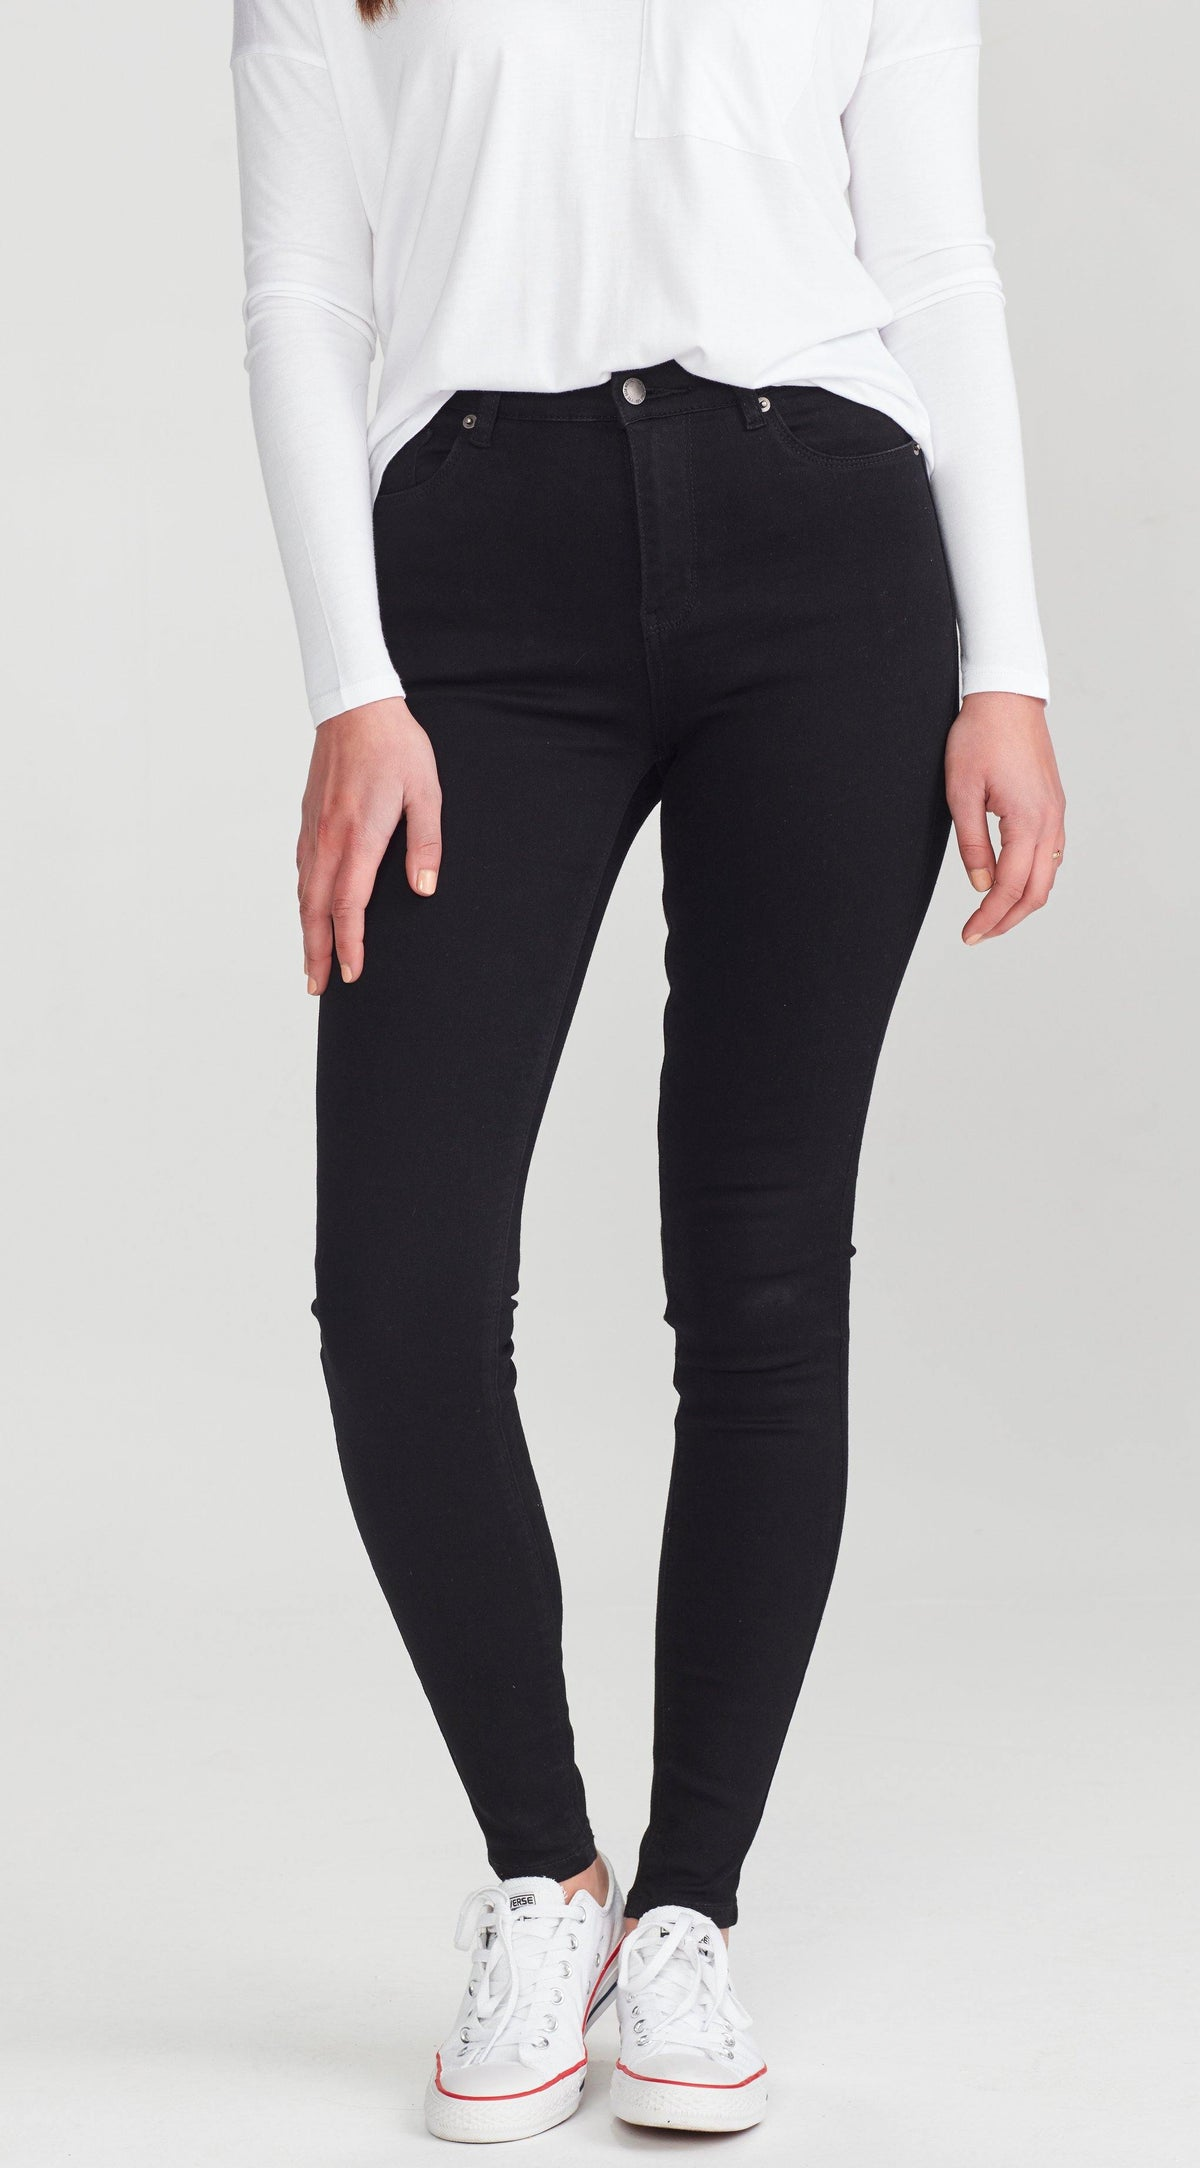 Slip Tall Jean- Black